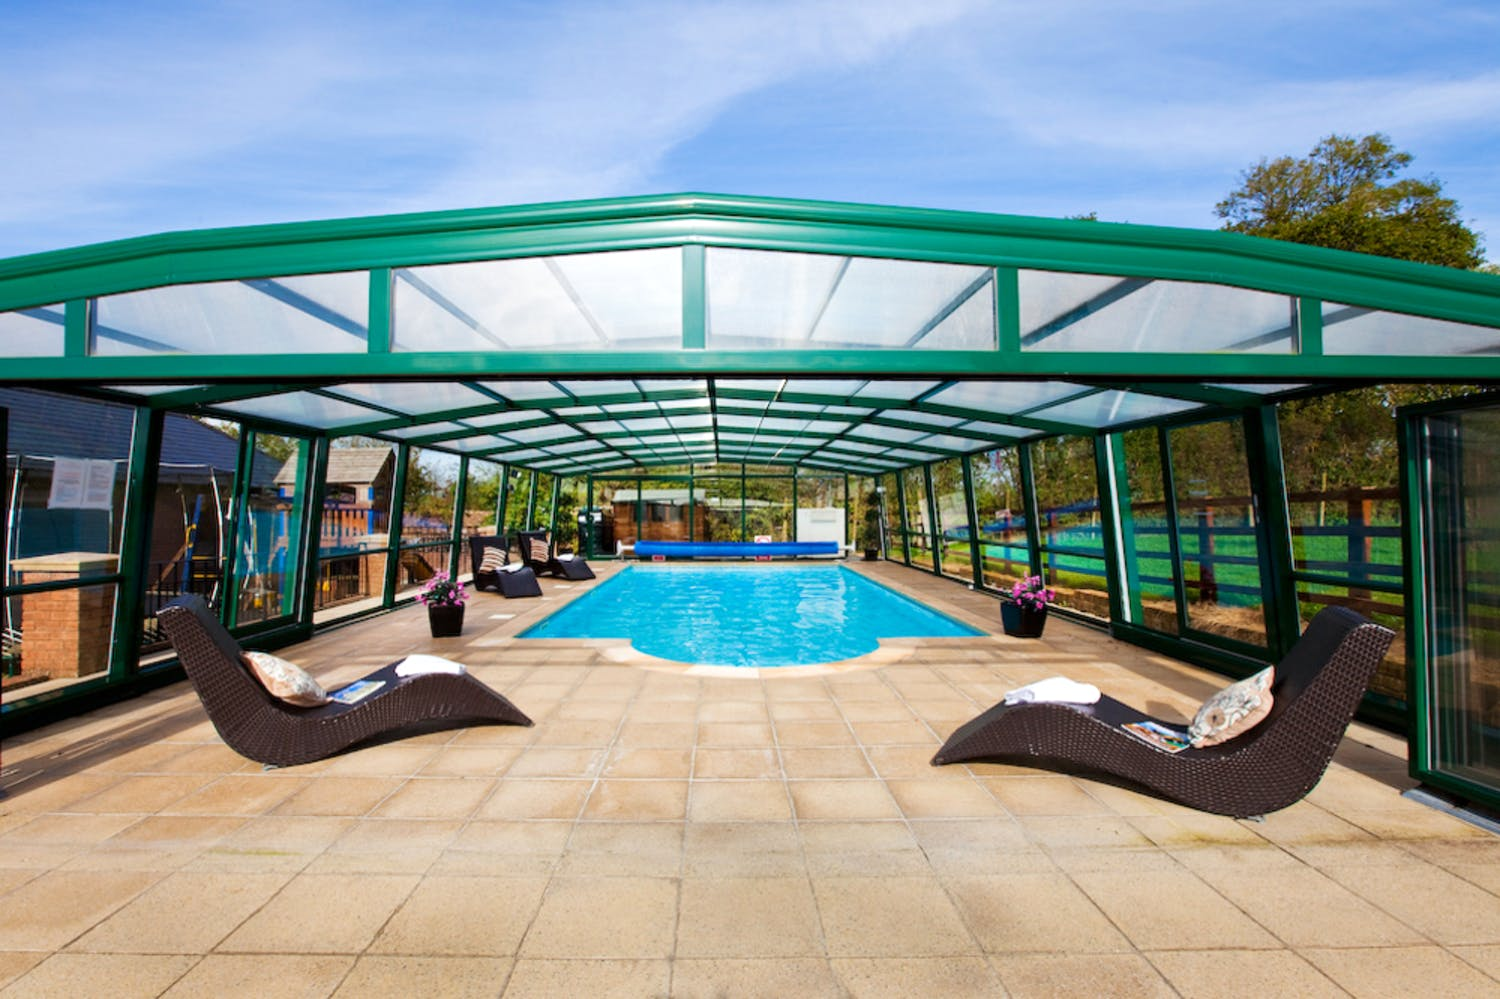 Holiday cottages in devon with a swimming pool holiday - Cottages in devon with swimming pool ...